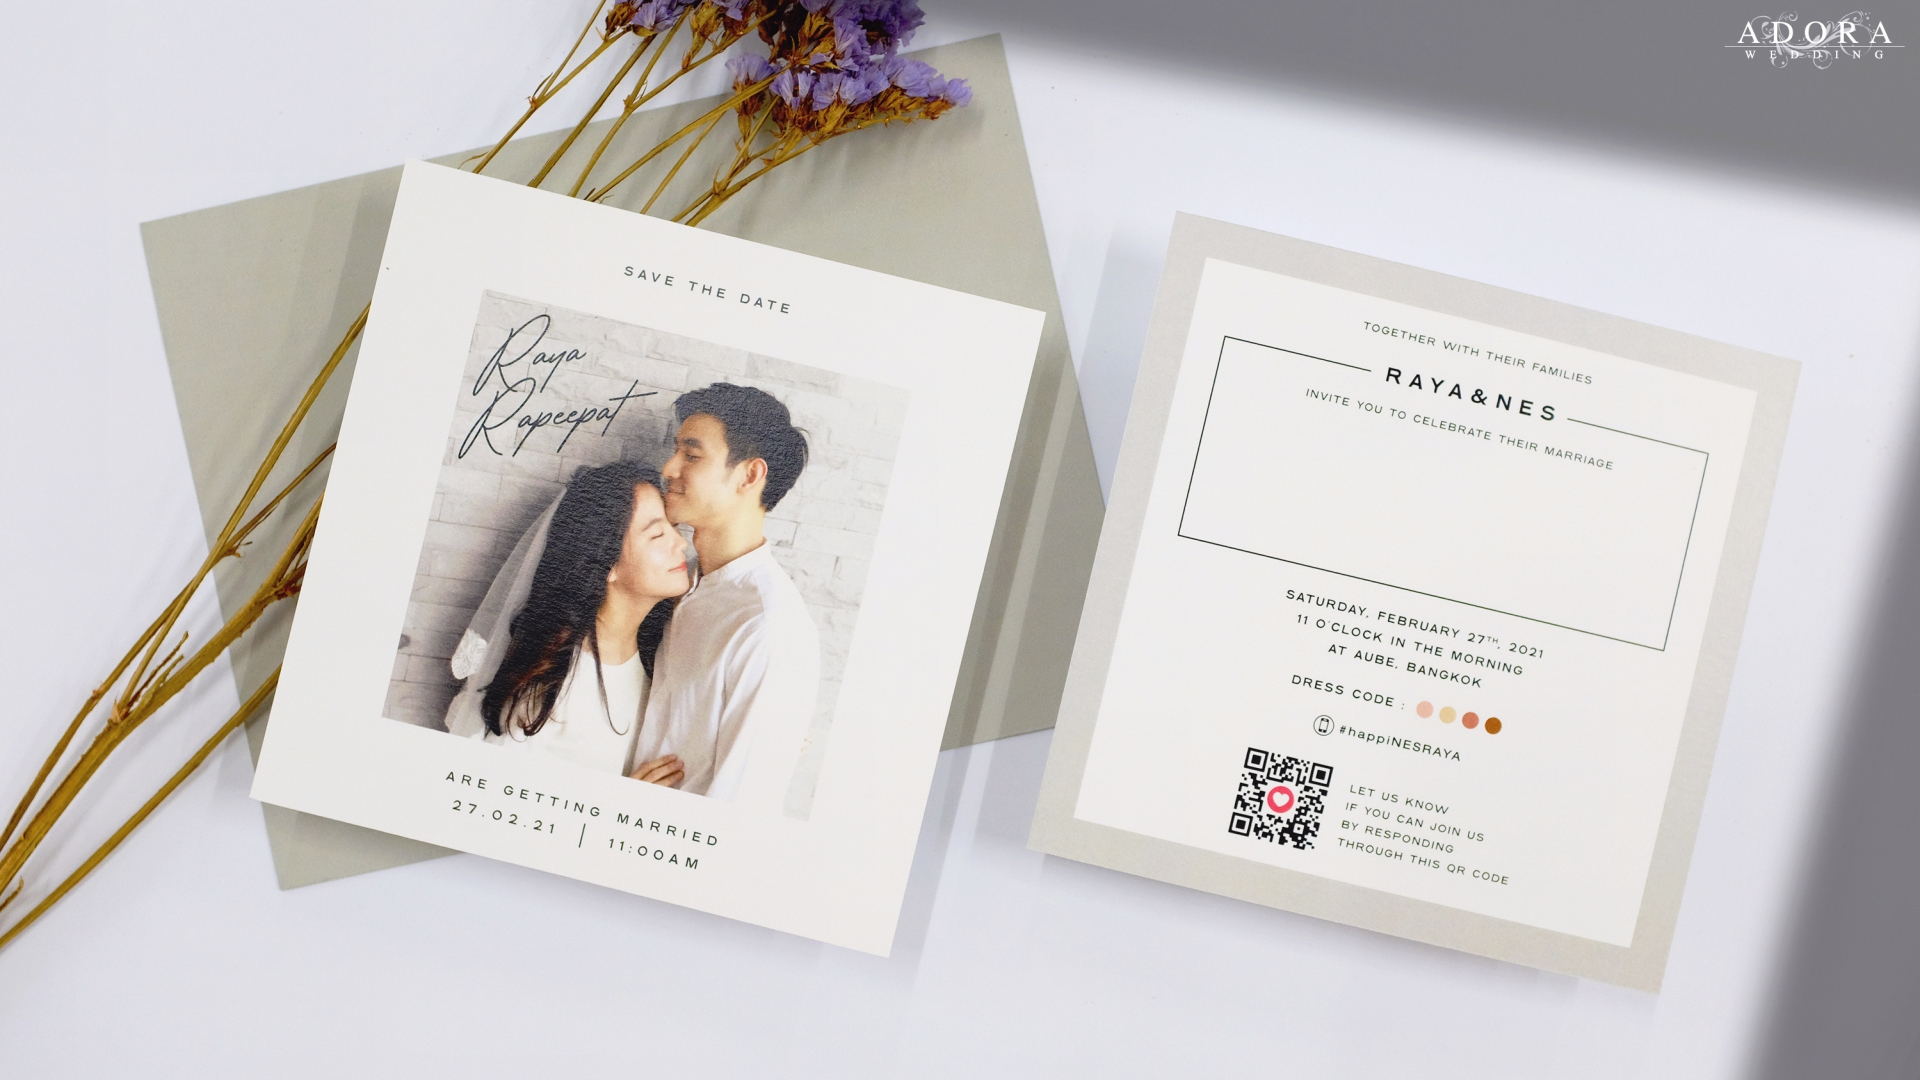 Portfolio C264 ... Square Wedding Card in Photo Style ... Cool and Different